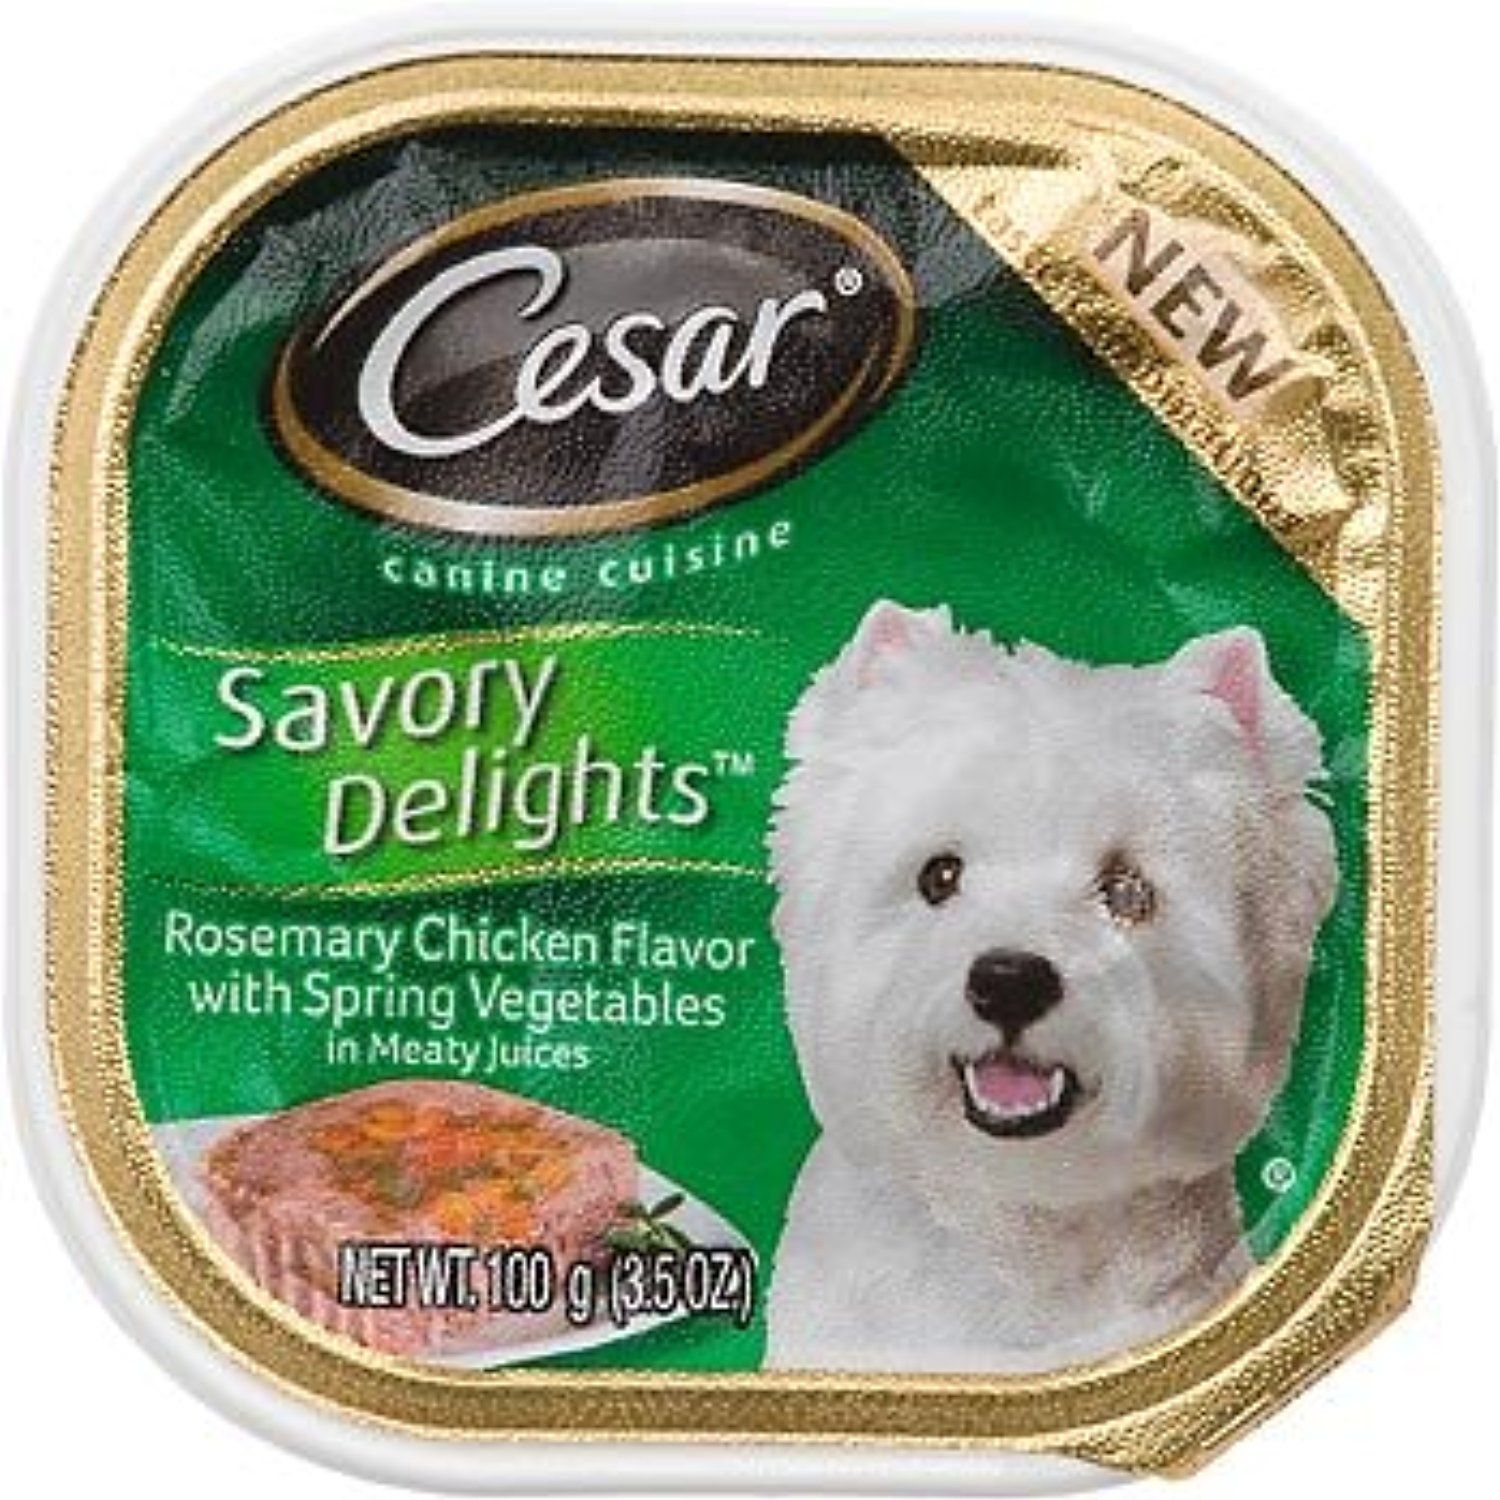 Cesar Savory Delights Rosemary Chicken Flavor With Spring